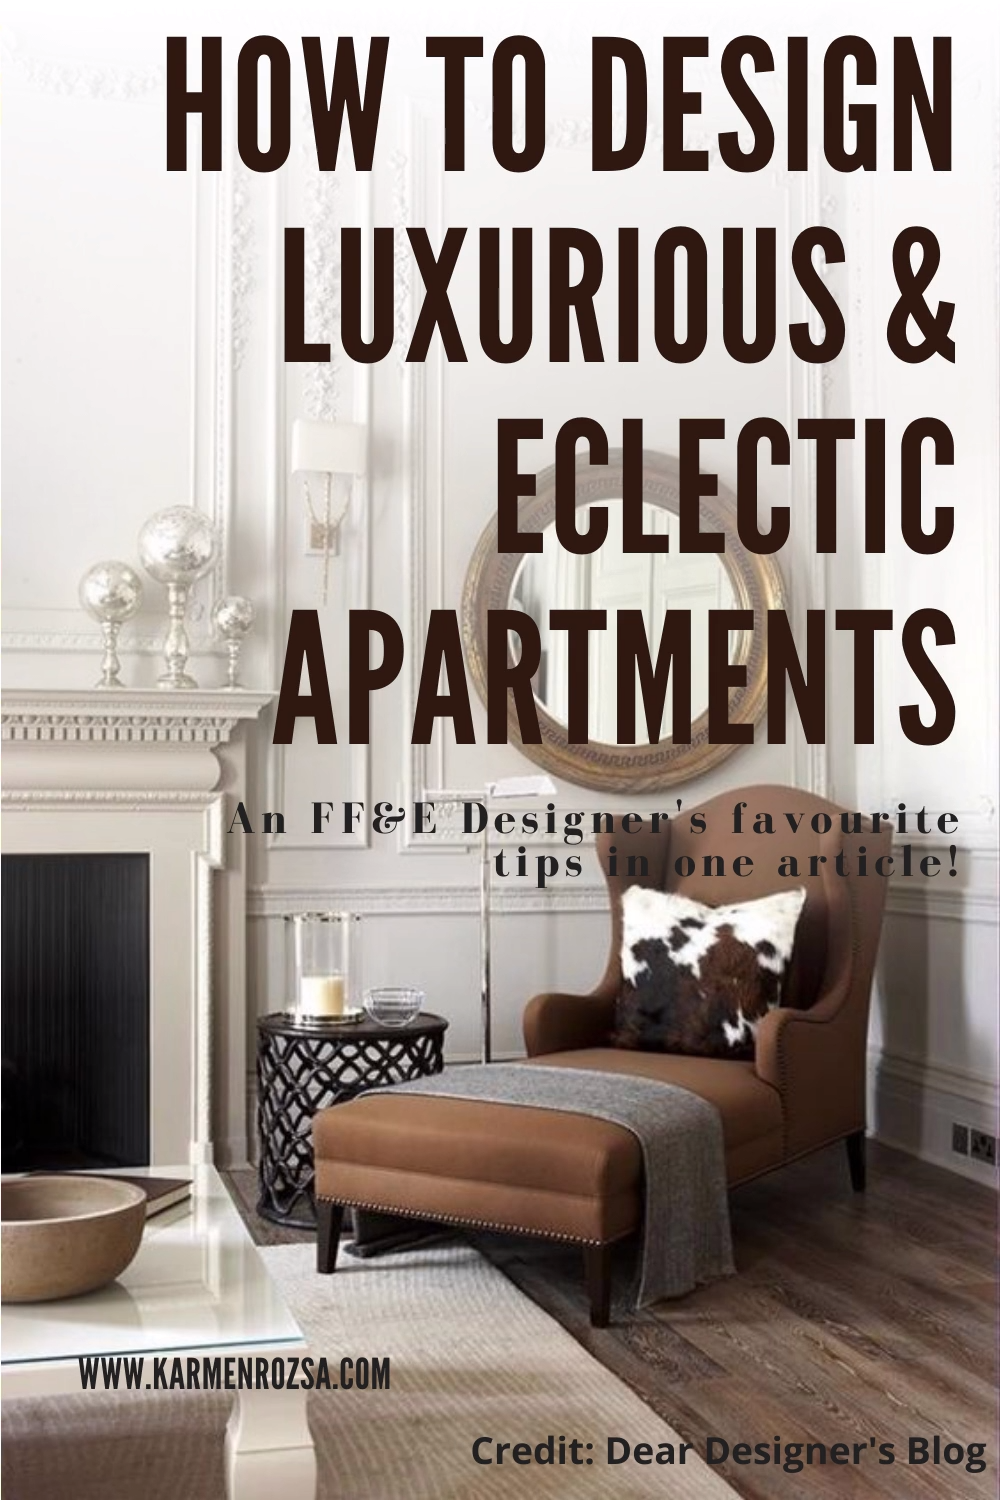 It can be easy if you try! This article will help you give some ideas, if you need to step out of your comfort zone and design an eclectic living space! #eclecticdesign #eclectichome #eclectichomedecor #homedecorstyleseclectic #eclecticdecor